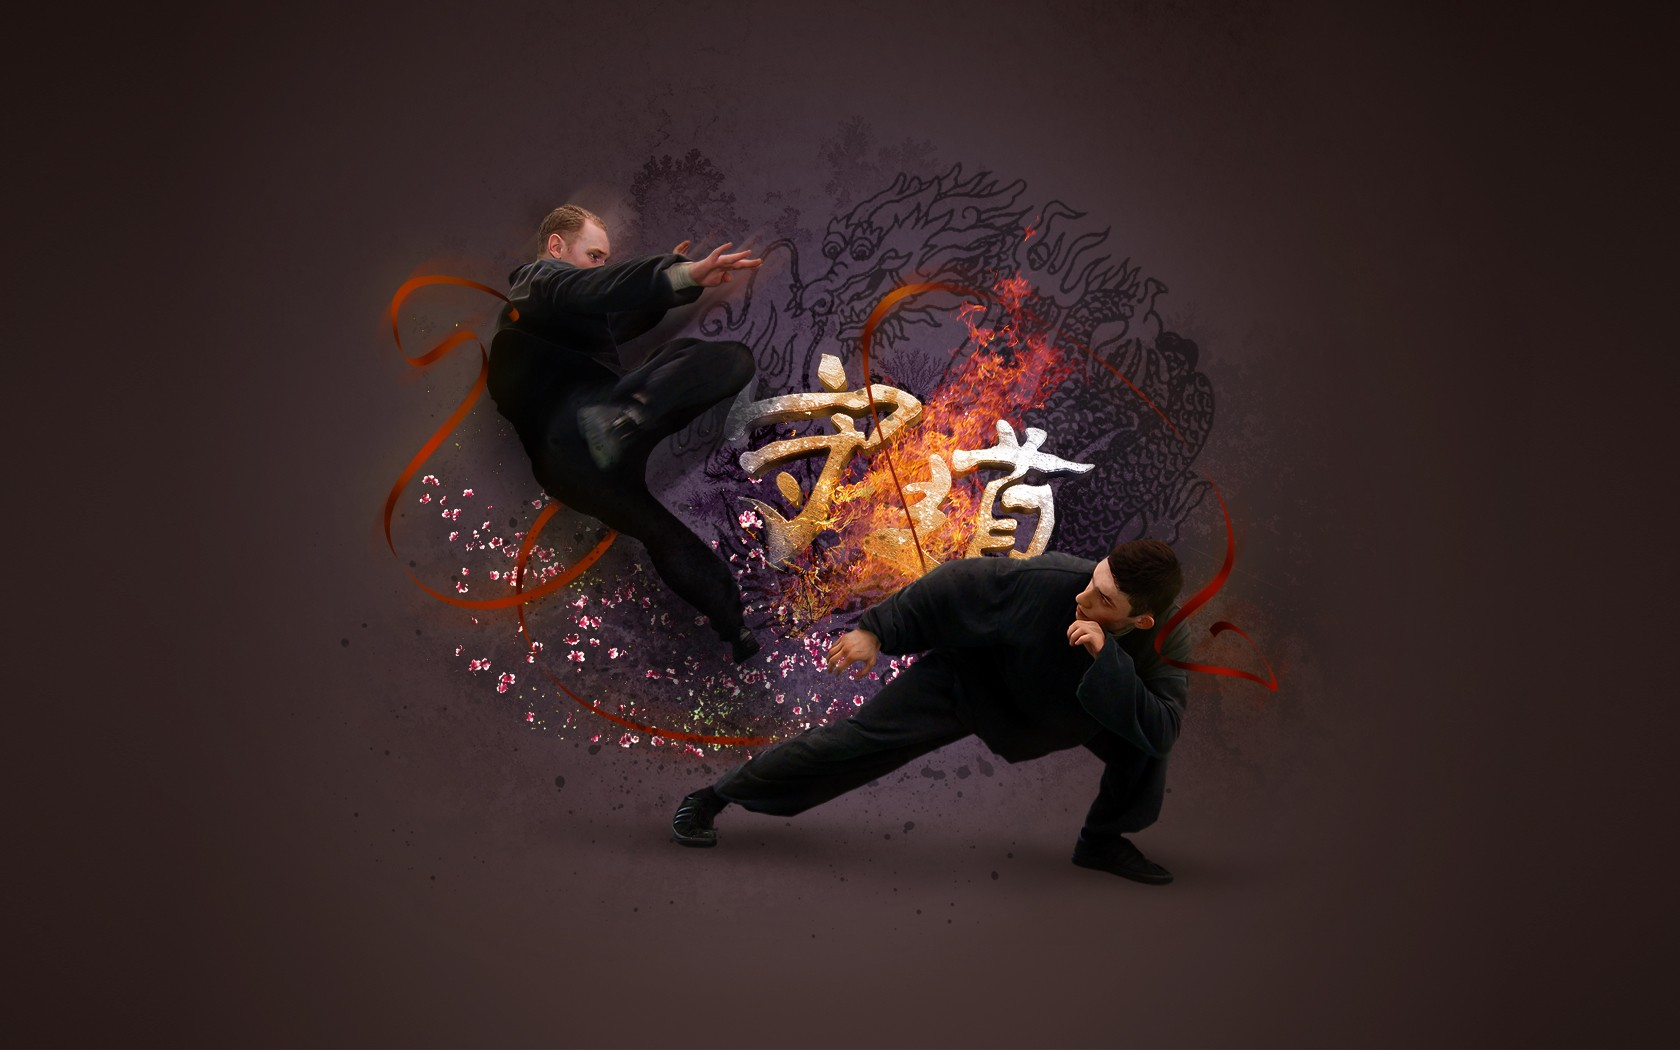 Id 860734 Wallpaper Abyss: 51 Martial Arts HD Wallpapers